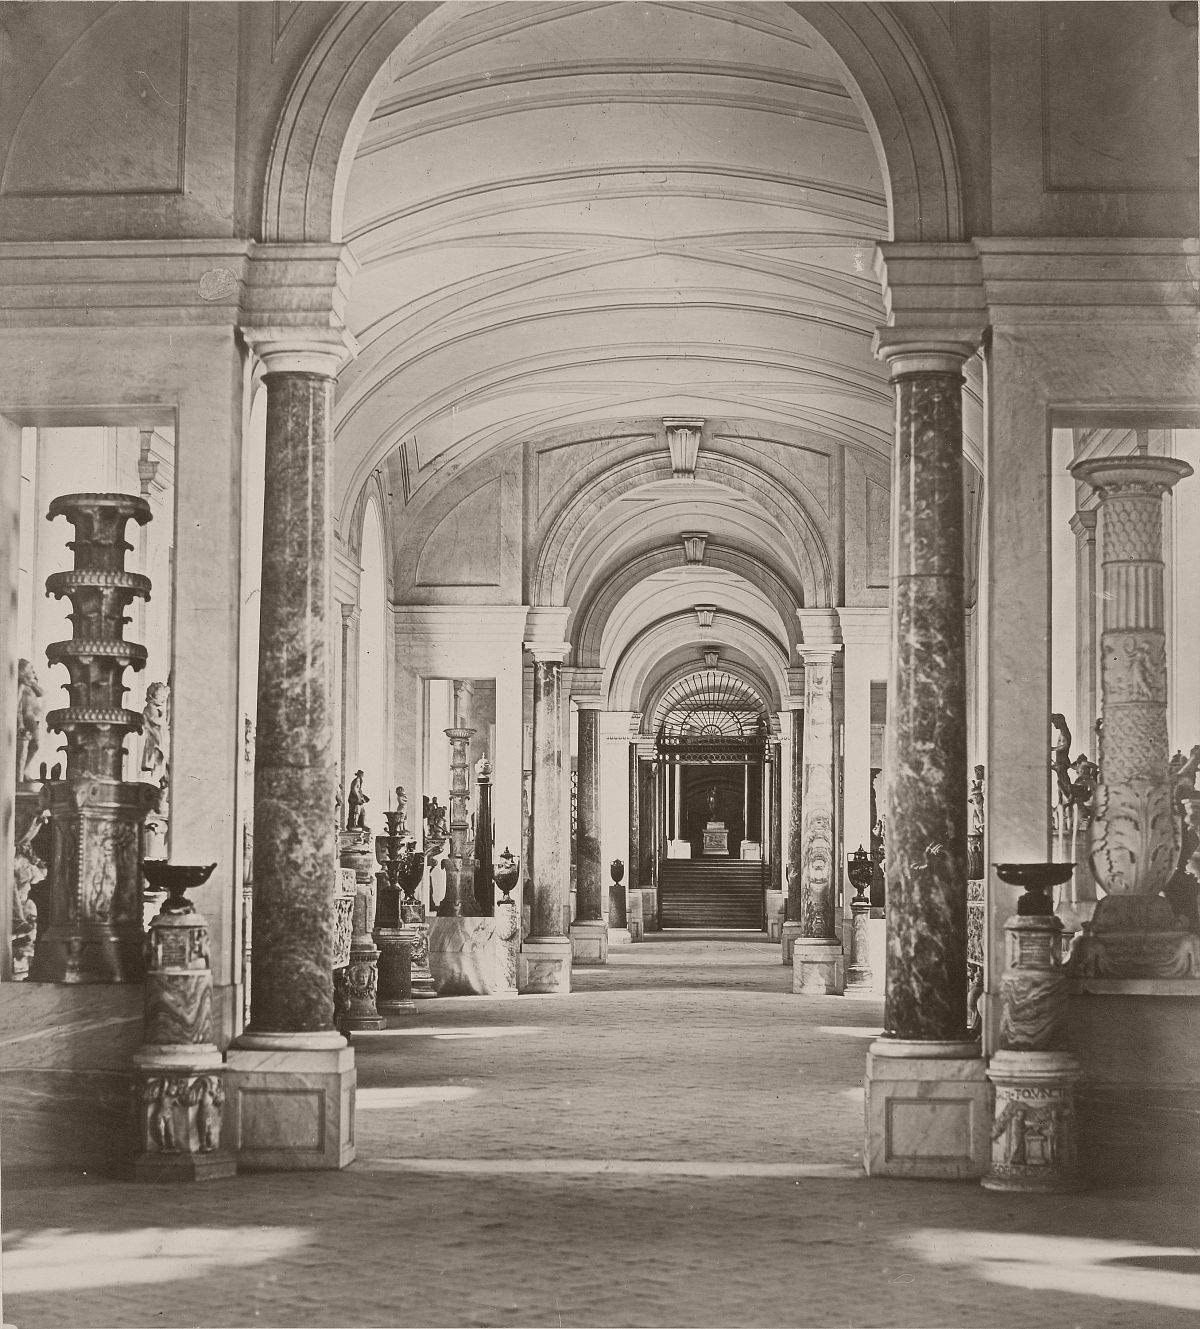 Hall of the Candelabra - Vatican, 1860s.